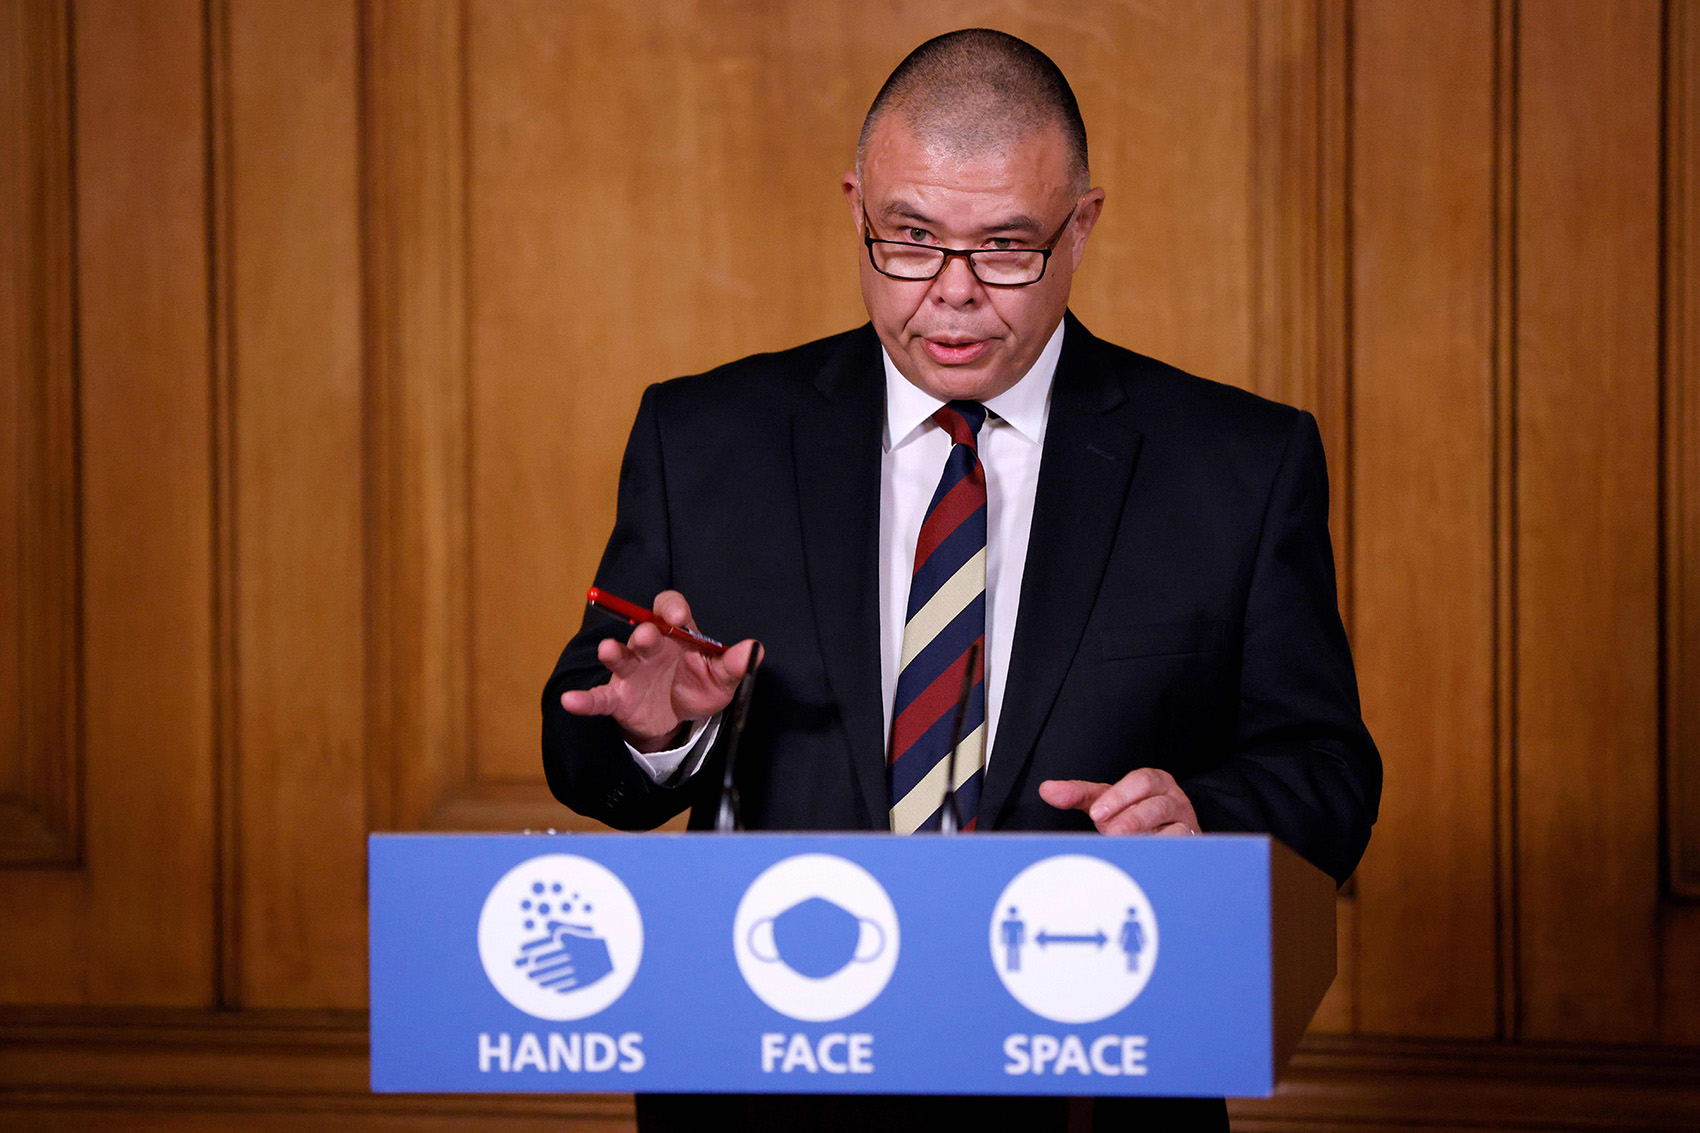 Britain's Deputy Chief Medical Officer for England Jonathan Van-Tam speaks during a virtual press conference inside 10 Downing Street in London, on December 2, 2020.